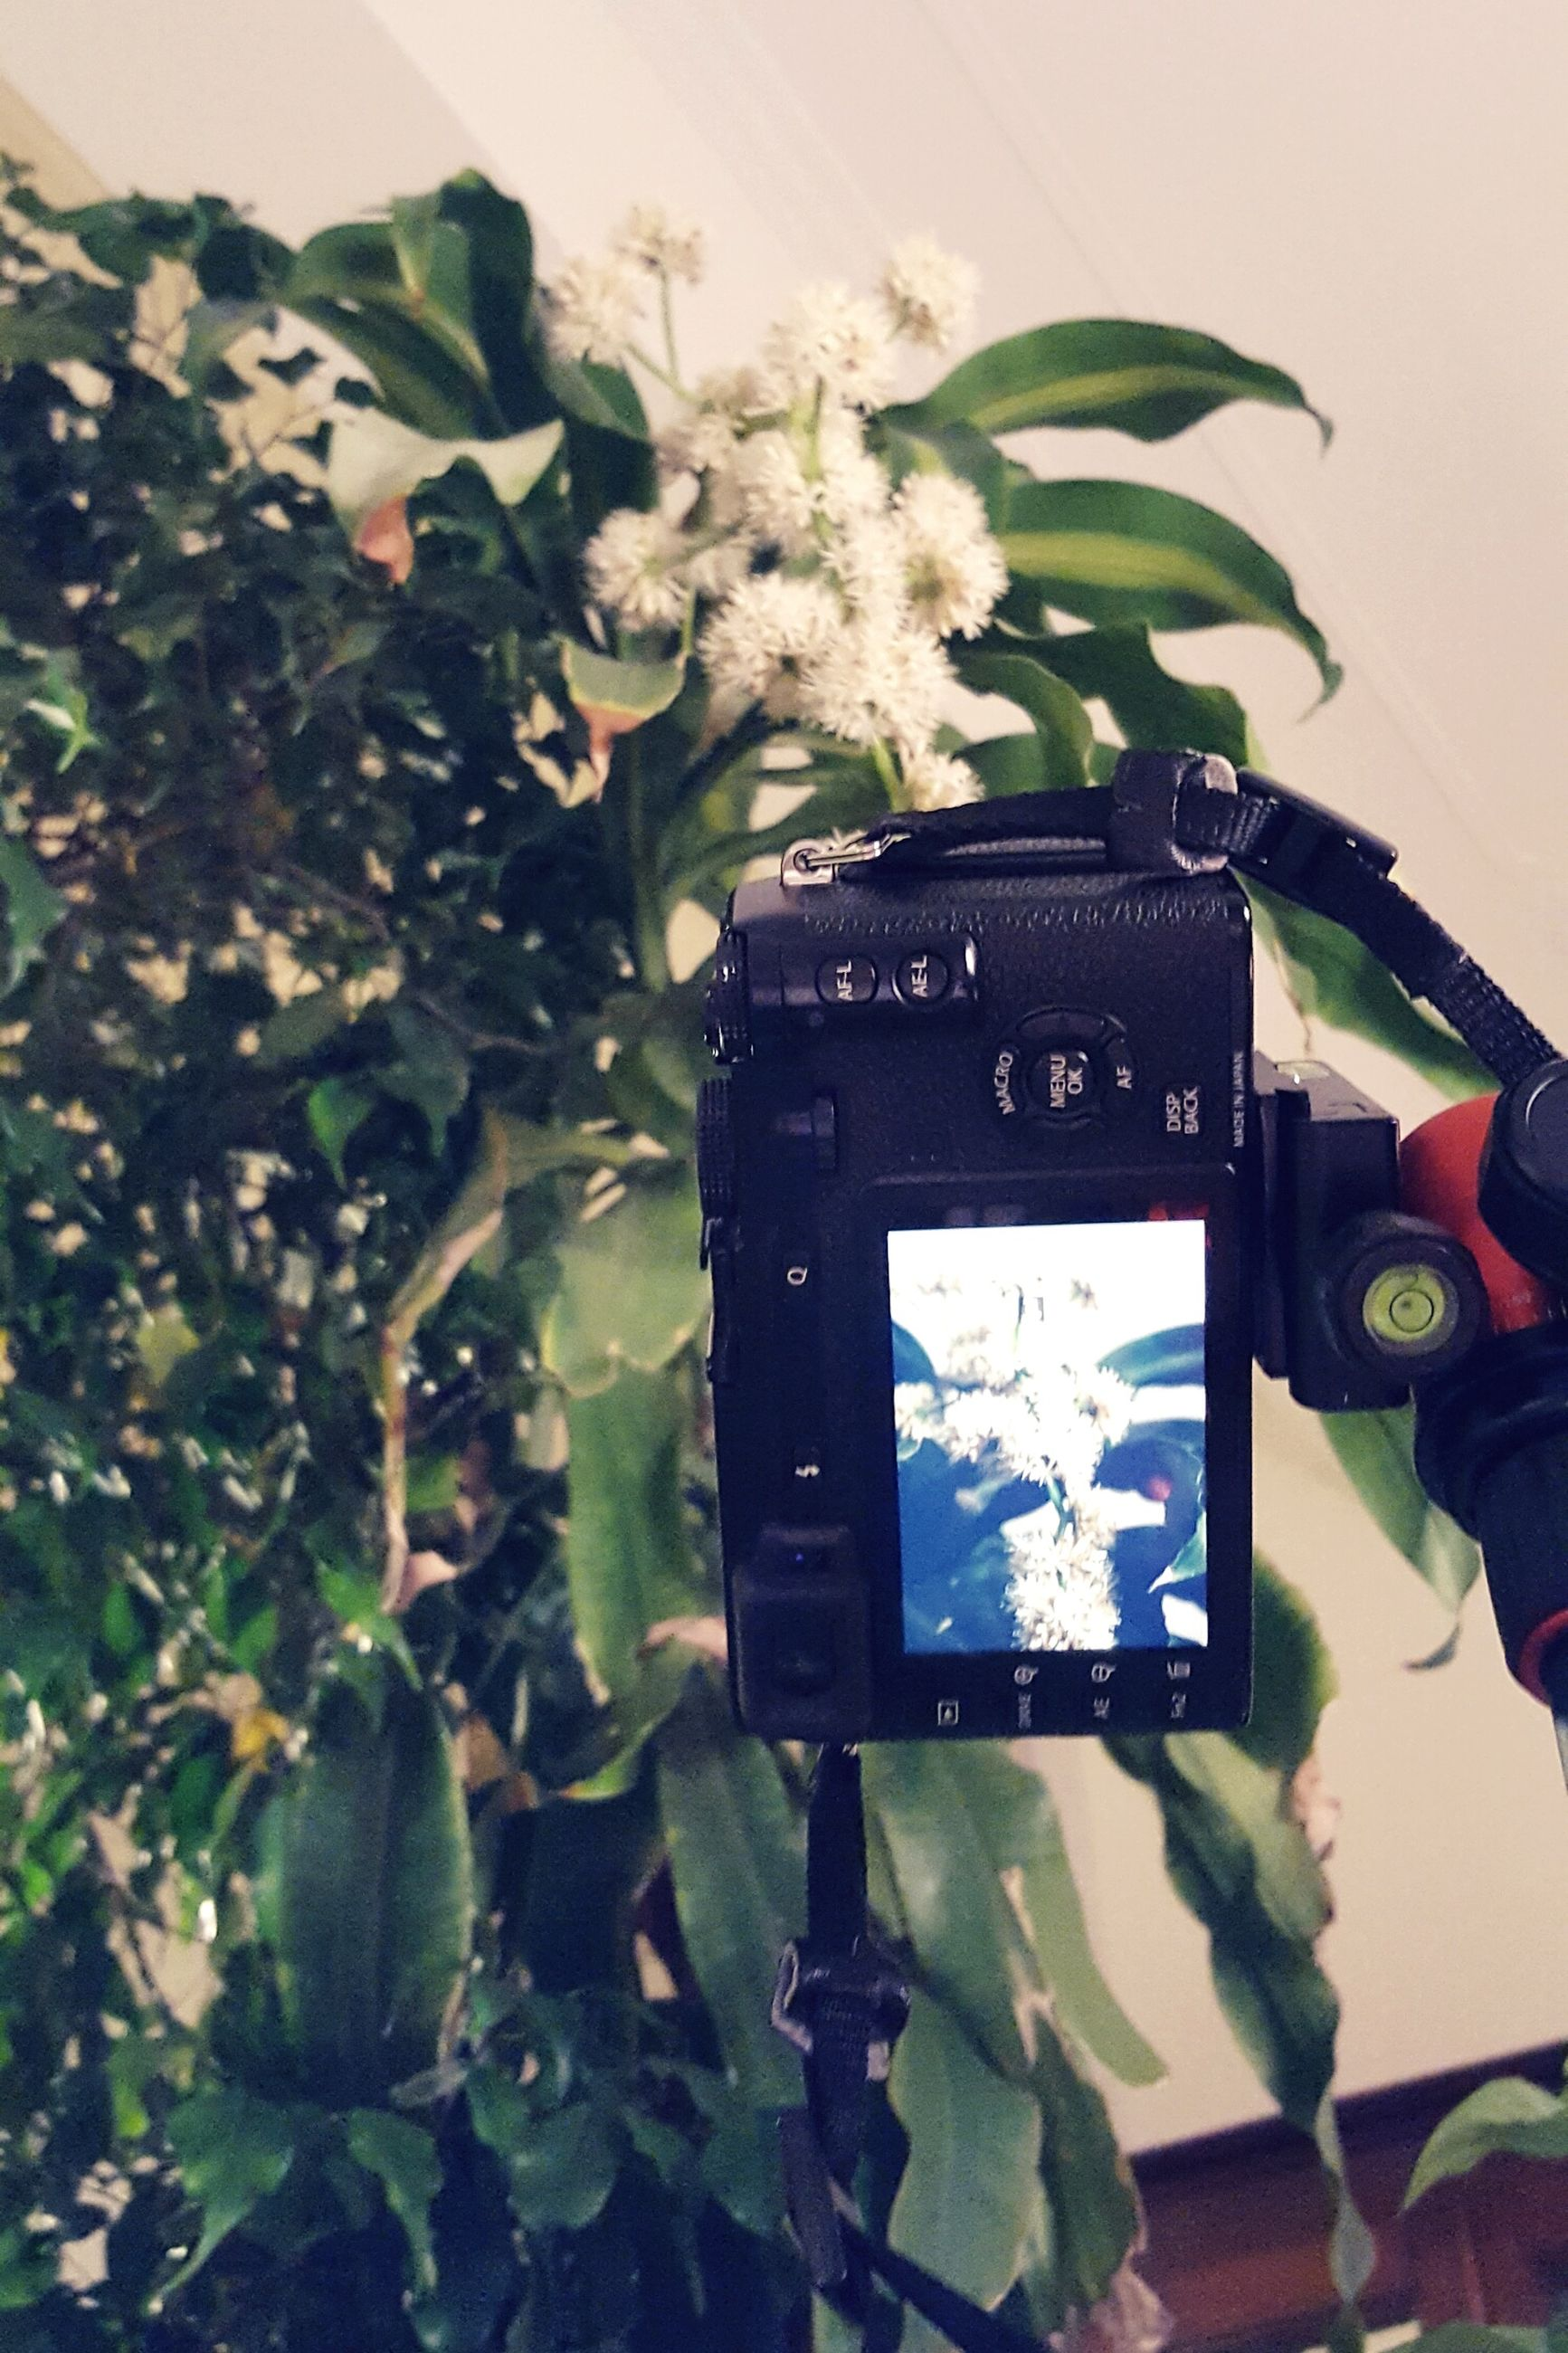 plant, old-fashioned, growth, leaf, flower, technology, indoors, no people, nature, close-up, postcard, day, flower head